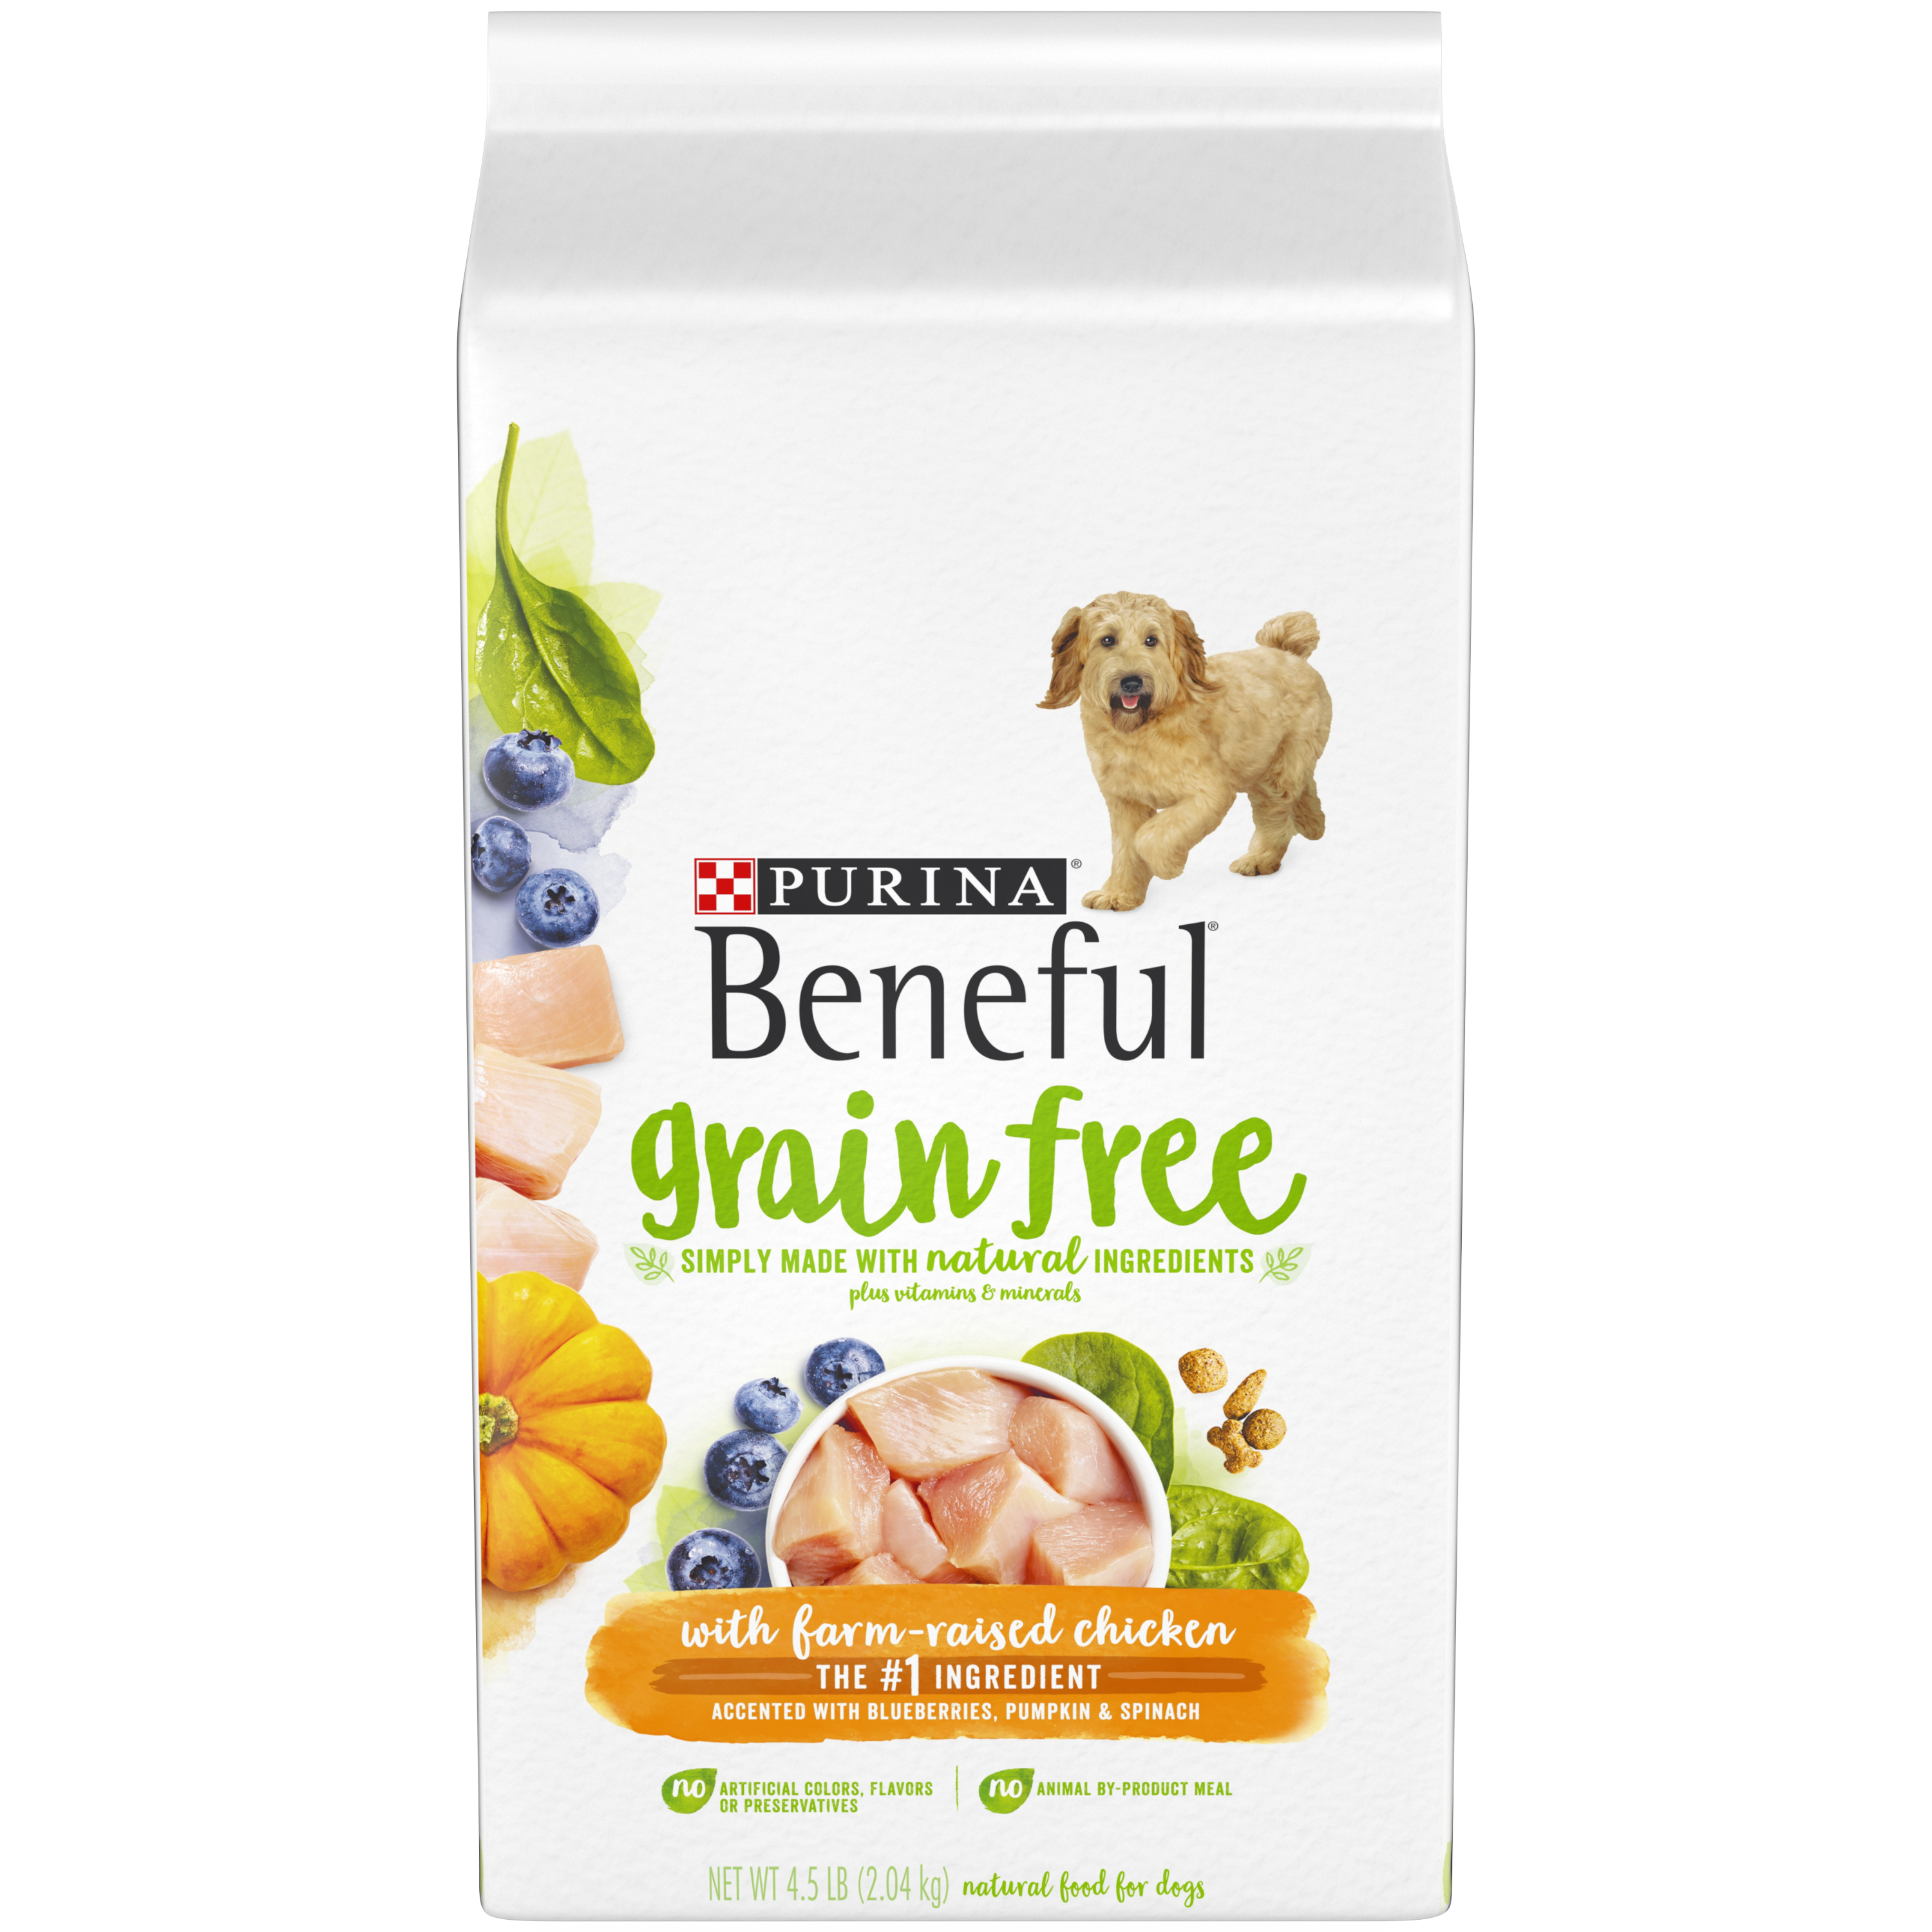 Purina Beneful Grain-Free With Real Farm-Raised Chicken Adult Dry Dog Food - 4.5 lb. Bag